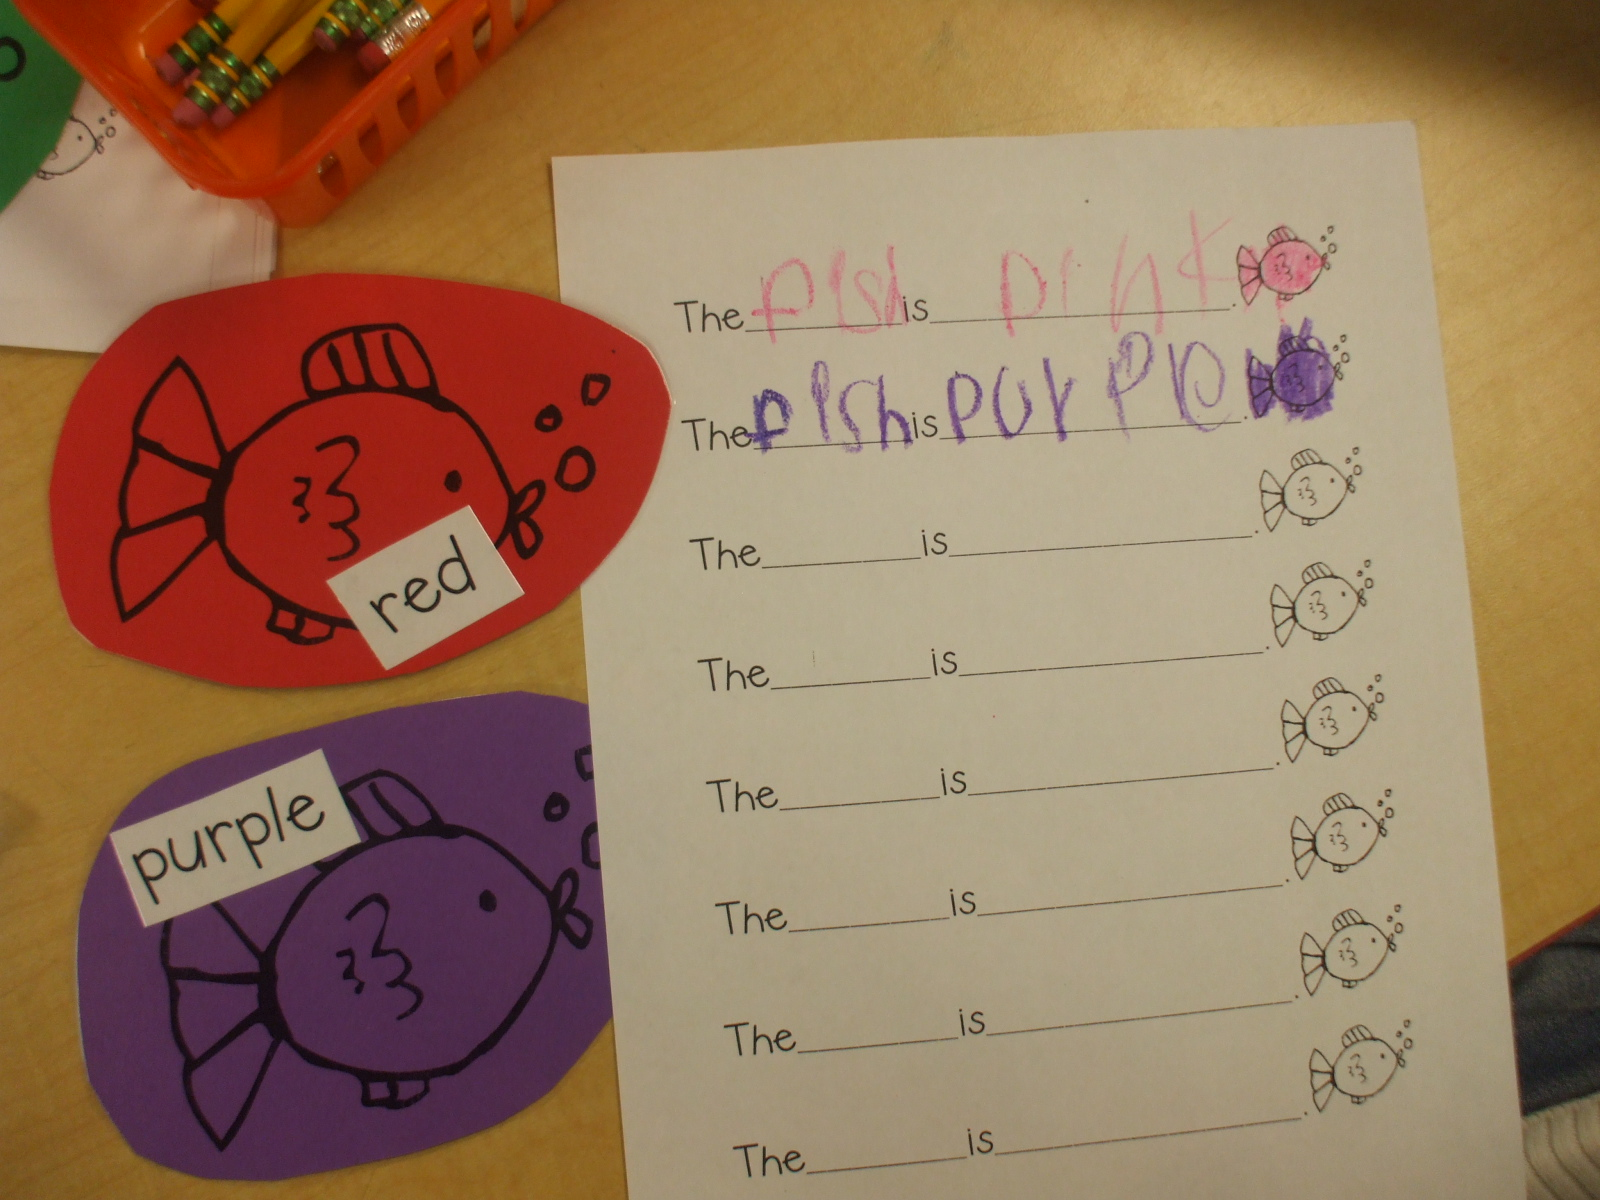 Dr Seuss One Fish Two Fish Red Fish Blue Fish Worksheets